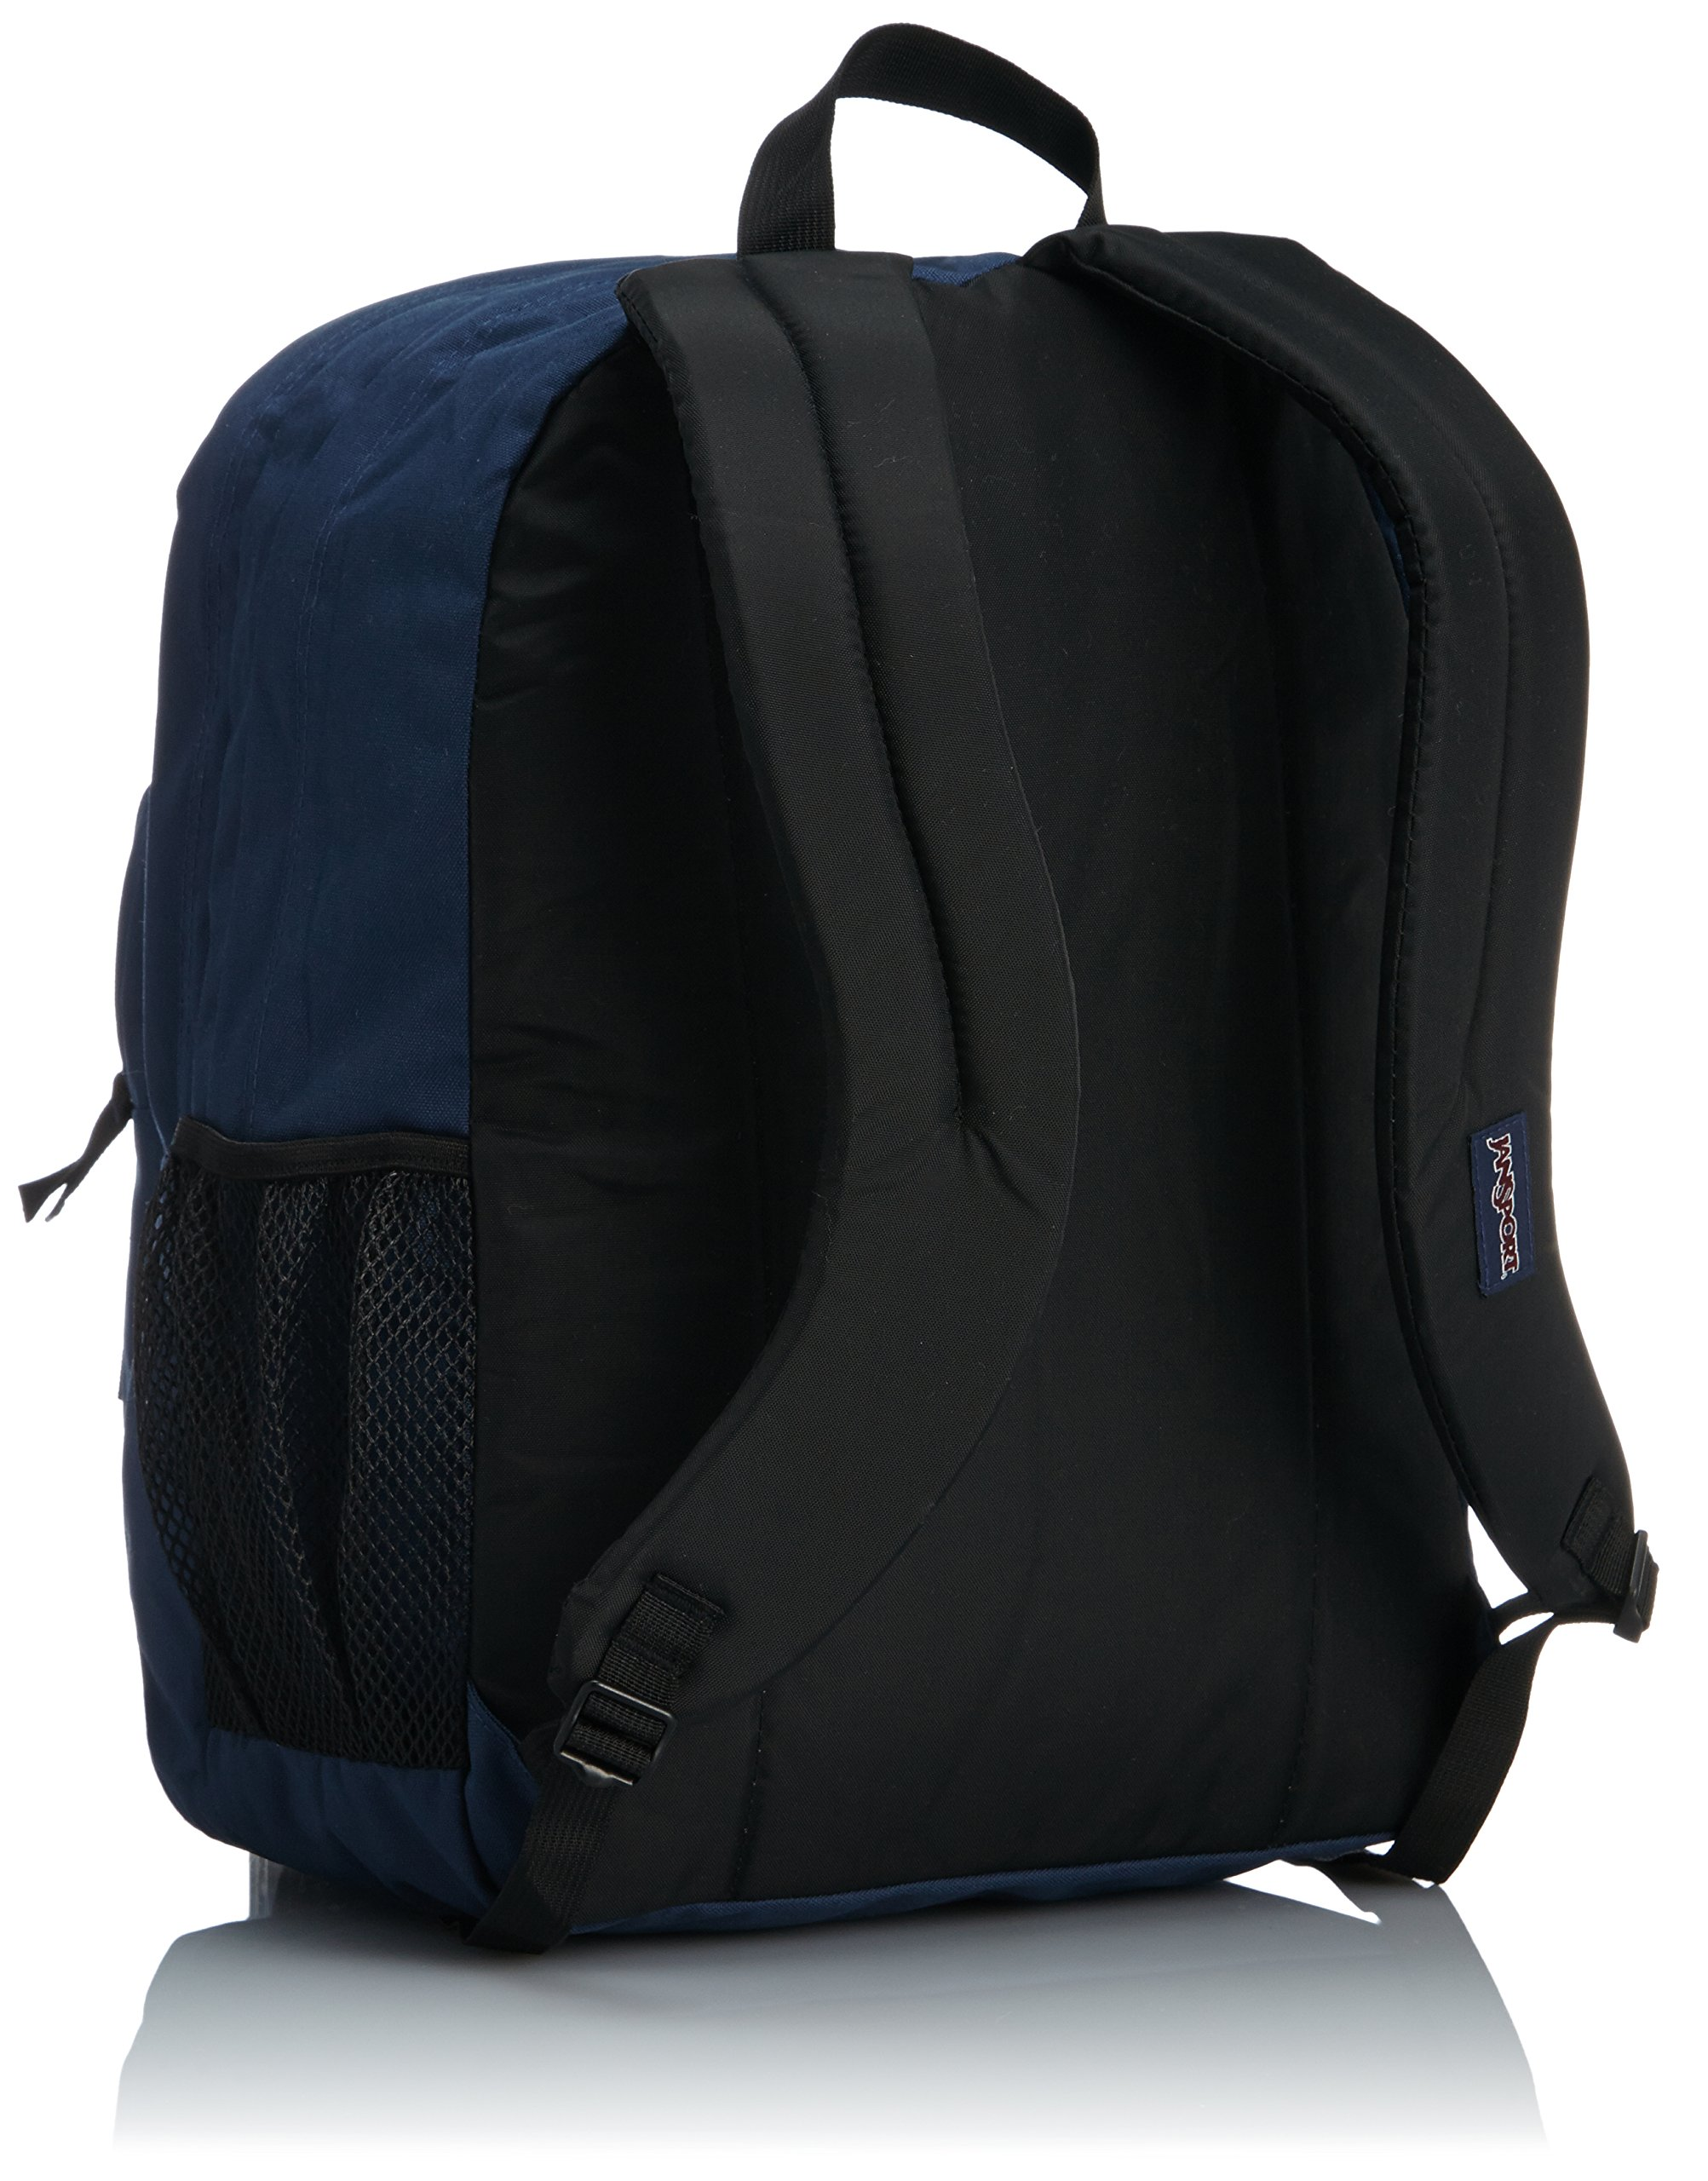 JanSport Big Student Classics Series Backpack - Navy by JanSport (Image #6)